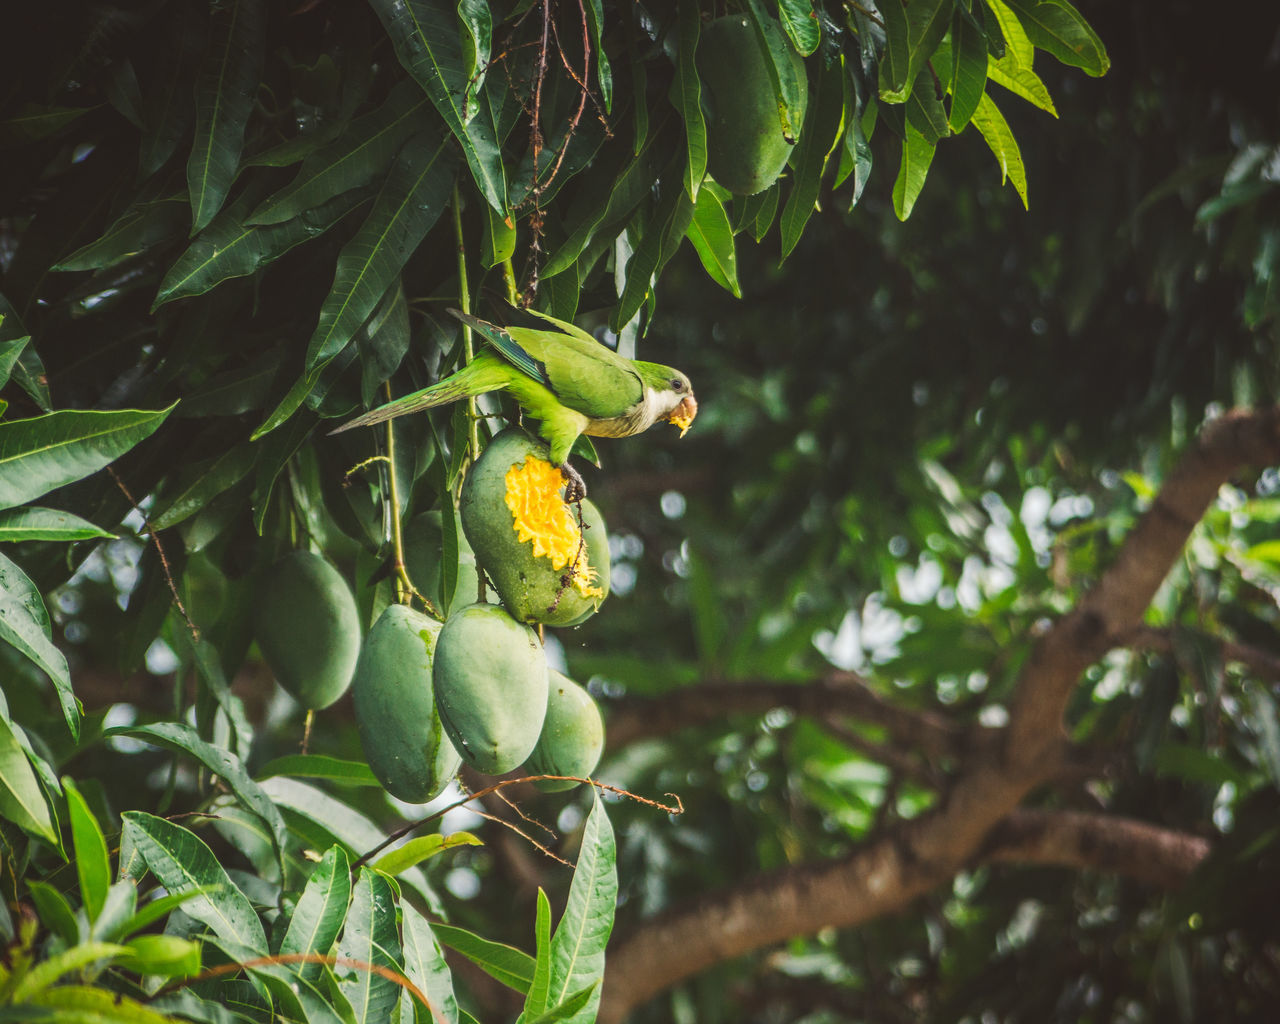 We had three mango trees in our garden and the green parrots loved them. Just like we did! Animal Animal Themes Animal Wildlife Animals In The Wild Animals In The Wild Beauty In Nature Bird Focus On Foreground Food Food And Drink Freshness Fruit Green Color Growth Jungle Leaf Mango Nature No People One Animal Outdoors Parrot Perching Tree Wildlife BYOPaper! The Great Outdoors - 2017 EyeEm Awards